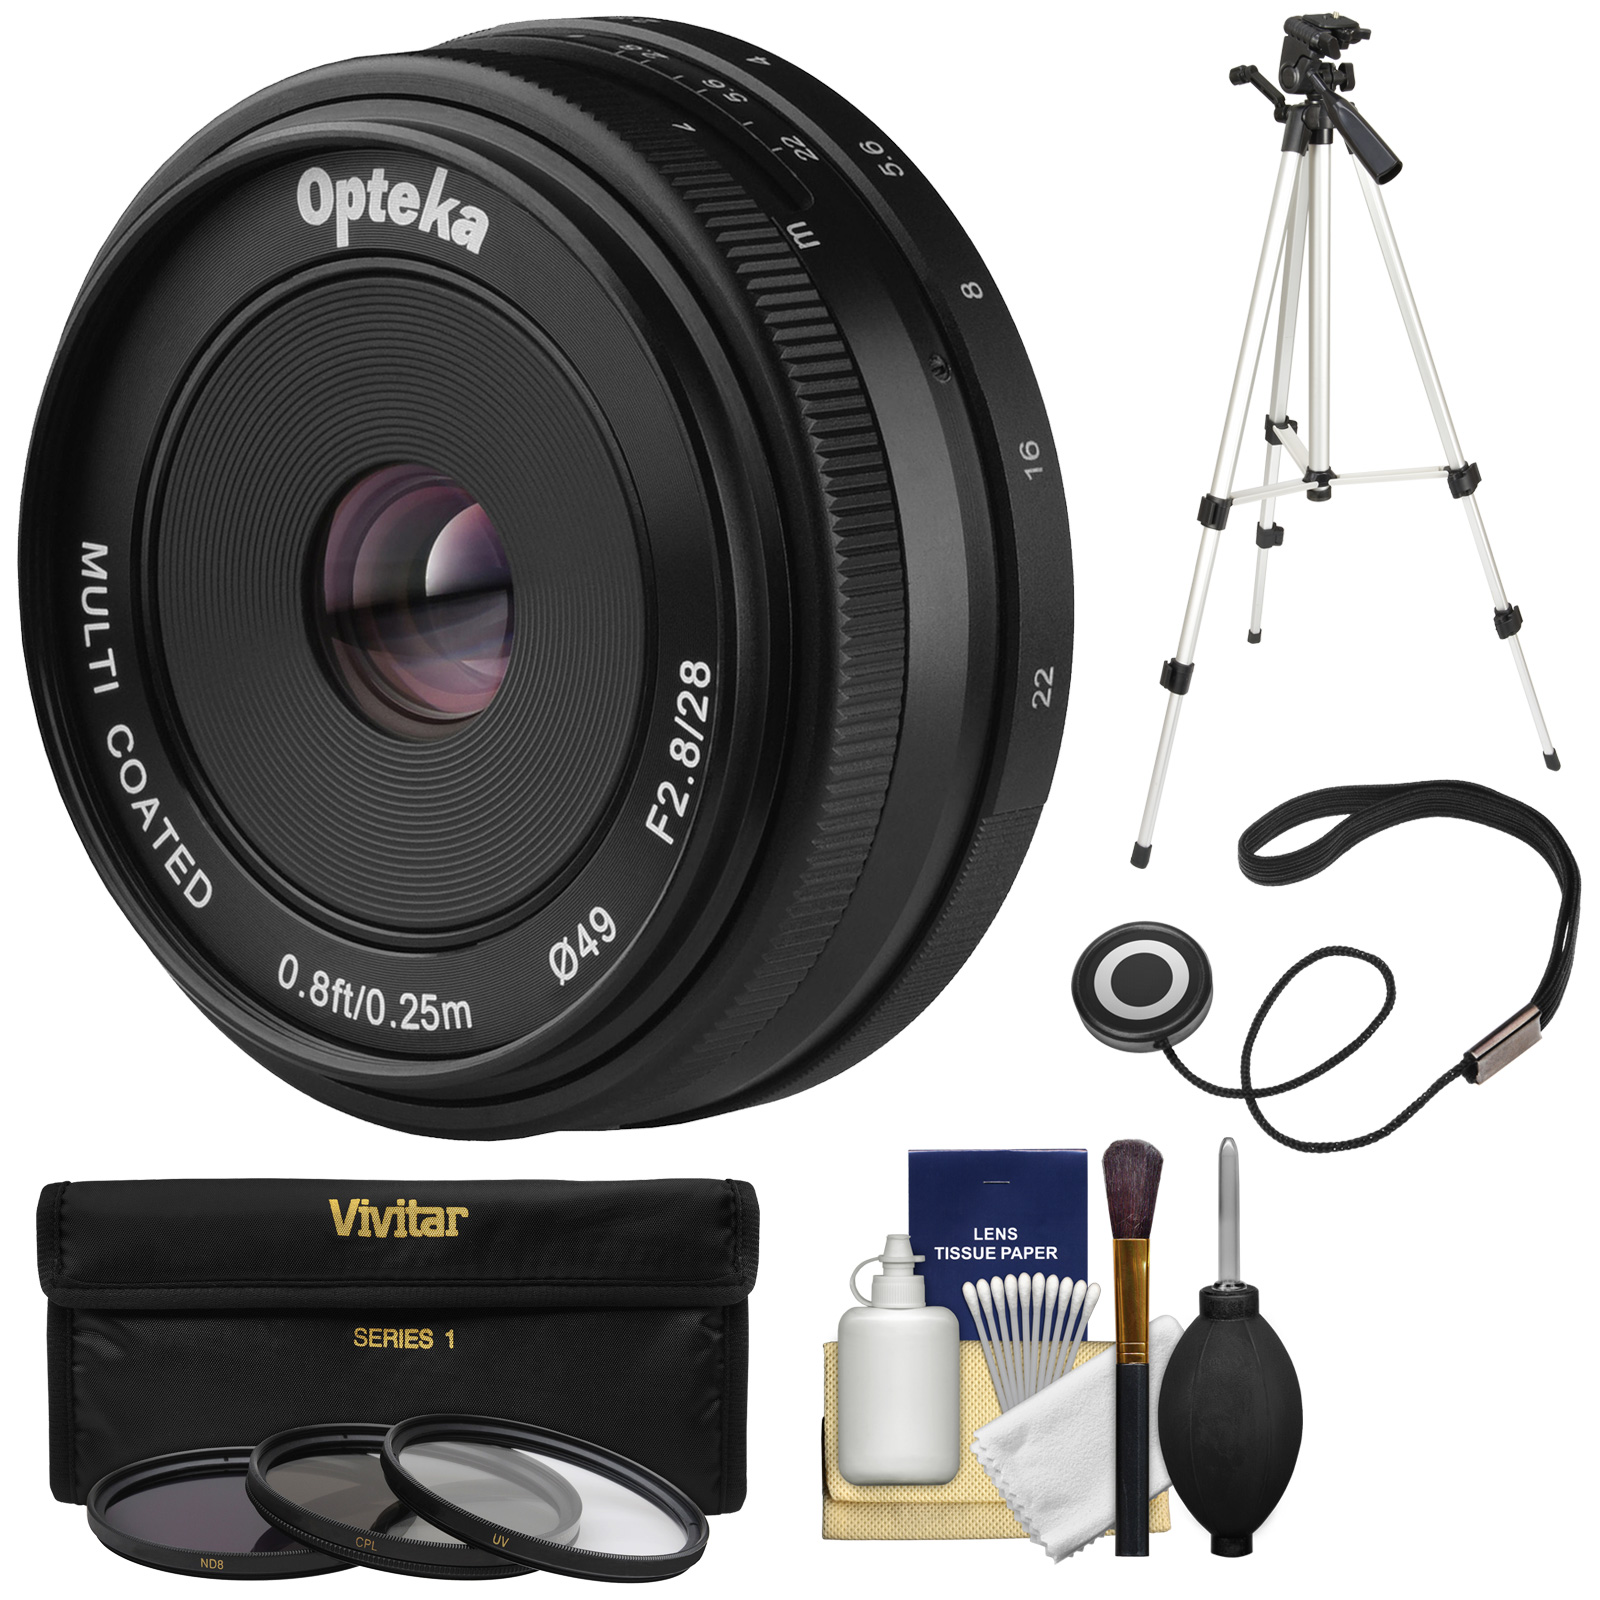 Opteka 28mm f/2.8 HD MF Prime Pancake Lens with 3 Filters + Tripod Kit for Olympus OM-D, PEN & Panasonic LUMIX Micro 4/3 Digital Cameras